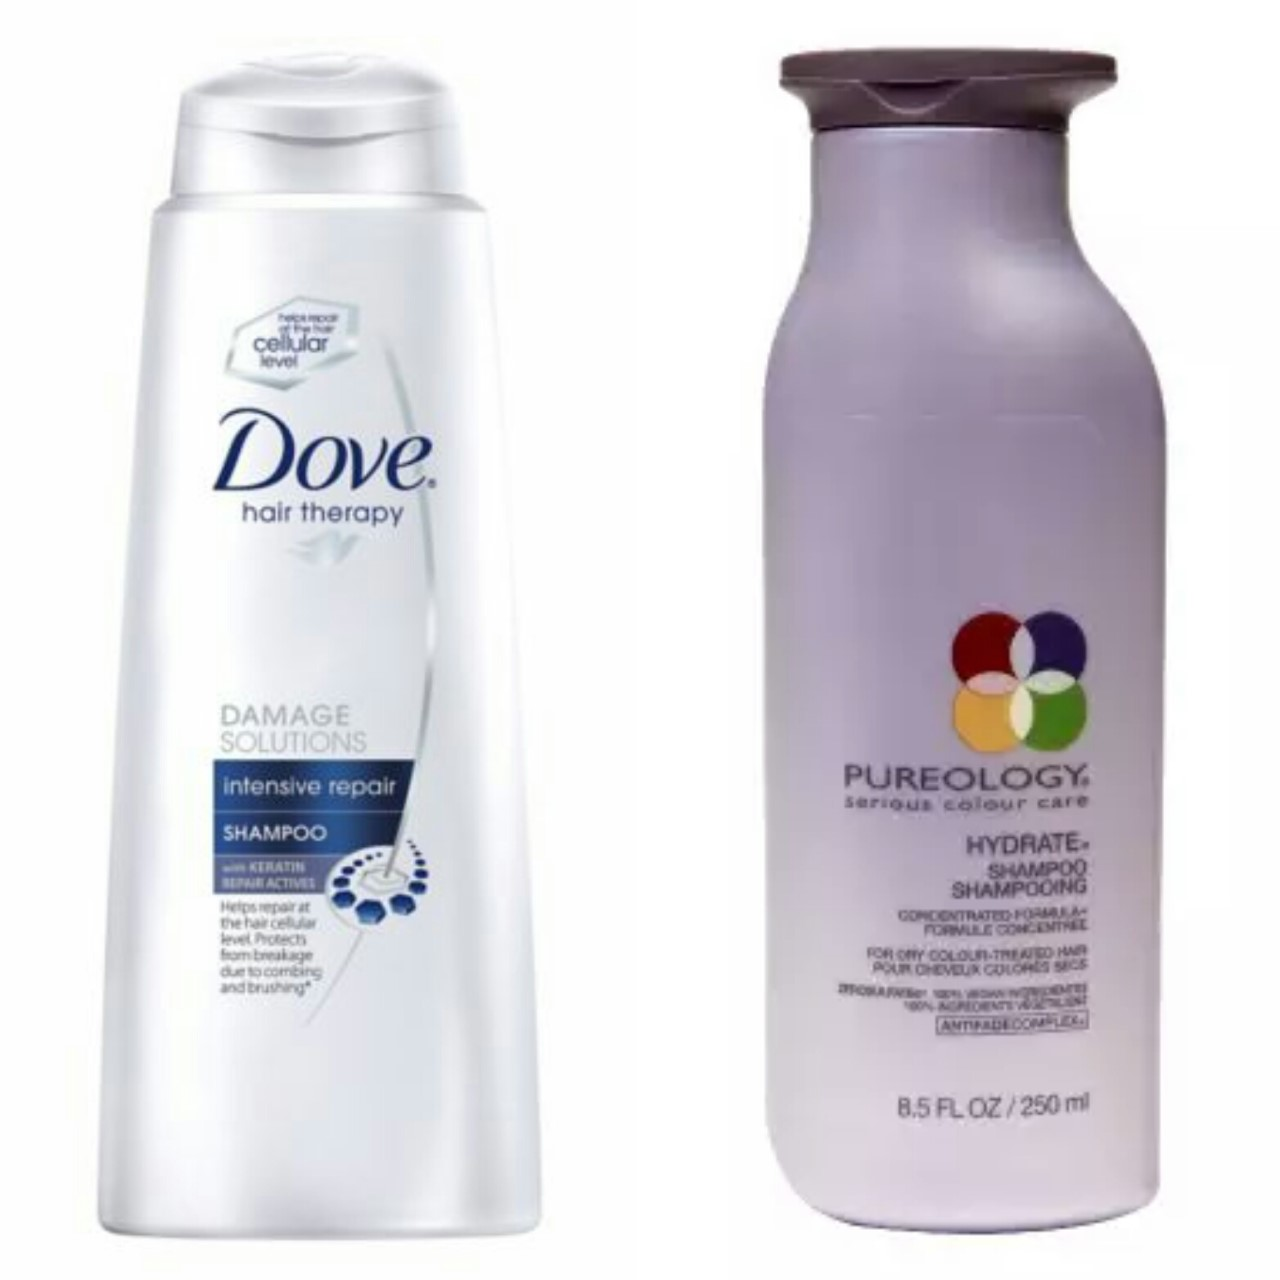 Salon shampoo vs drug store shampoo 180 degrees hair studio for 180 degree salon